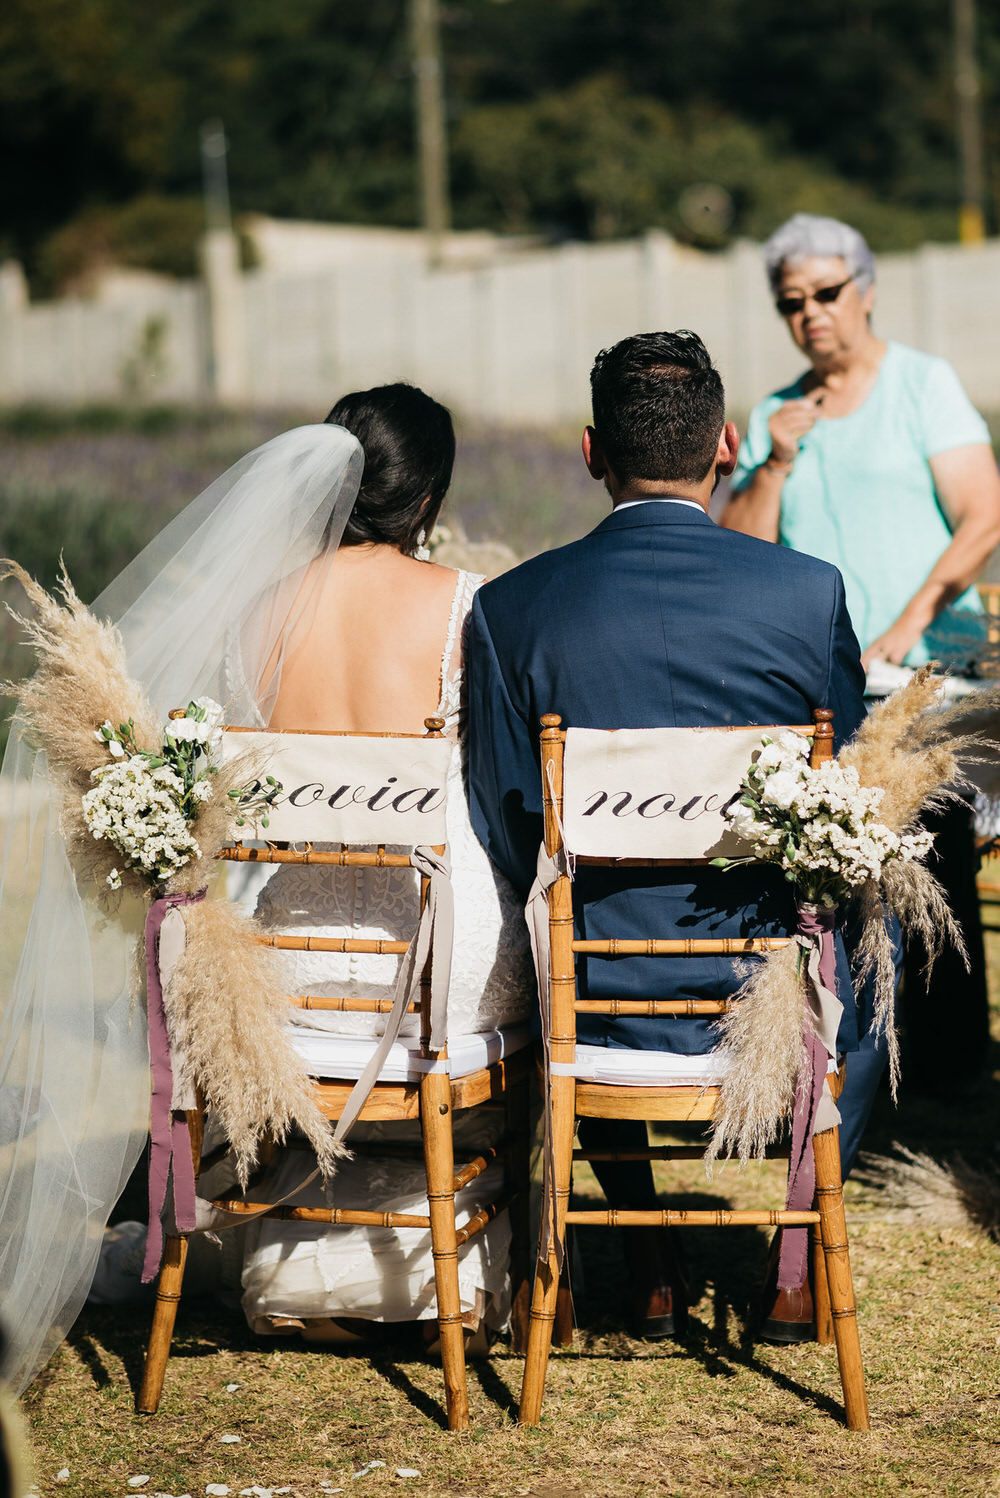 Chairs Pampas Grass Sign Ceremony Guatemala Wedding Daniel Lopez Perez Photography